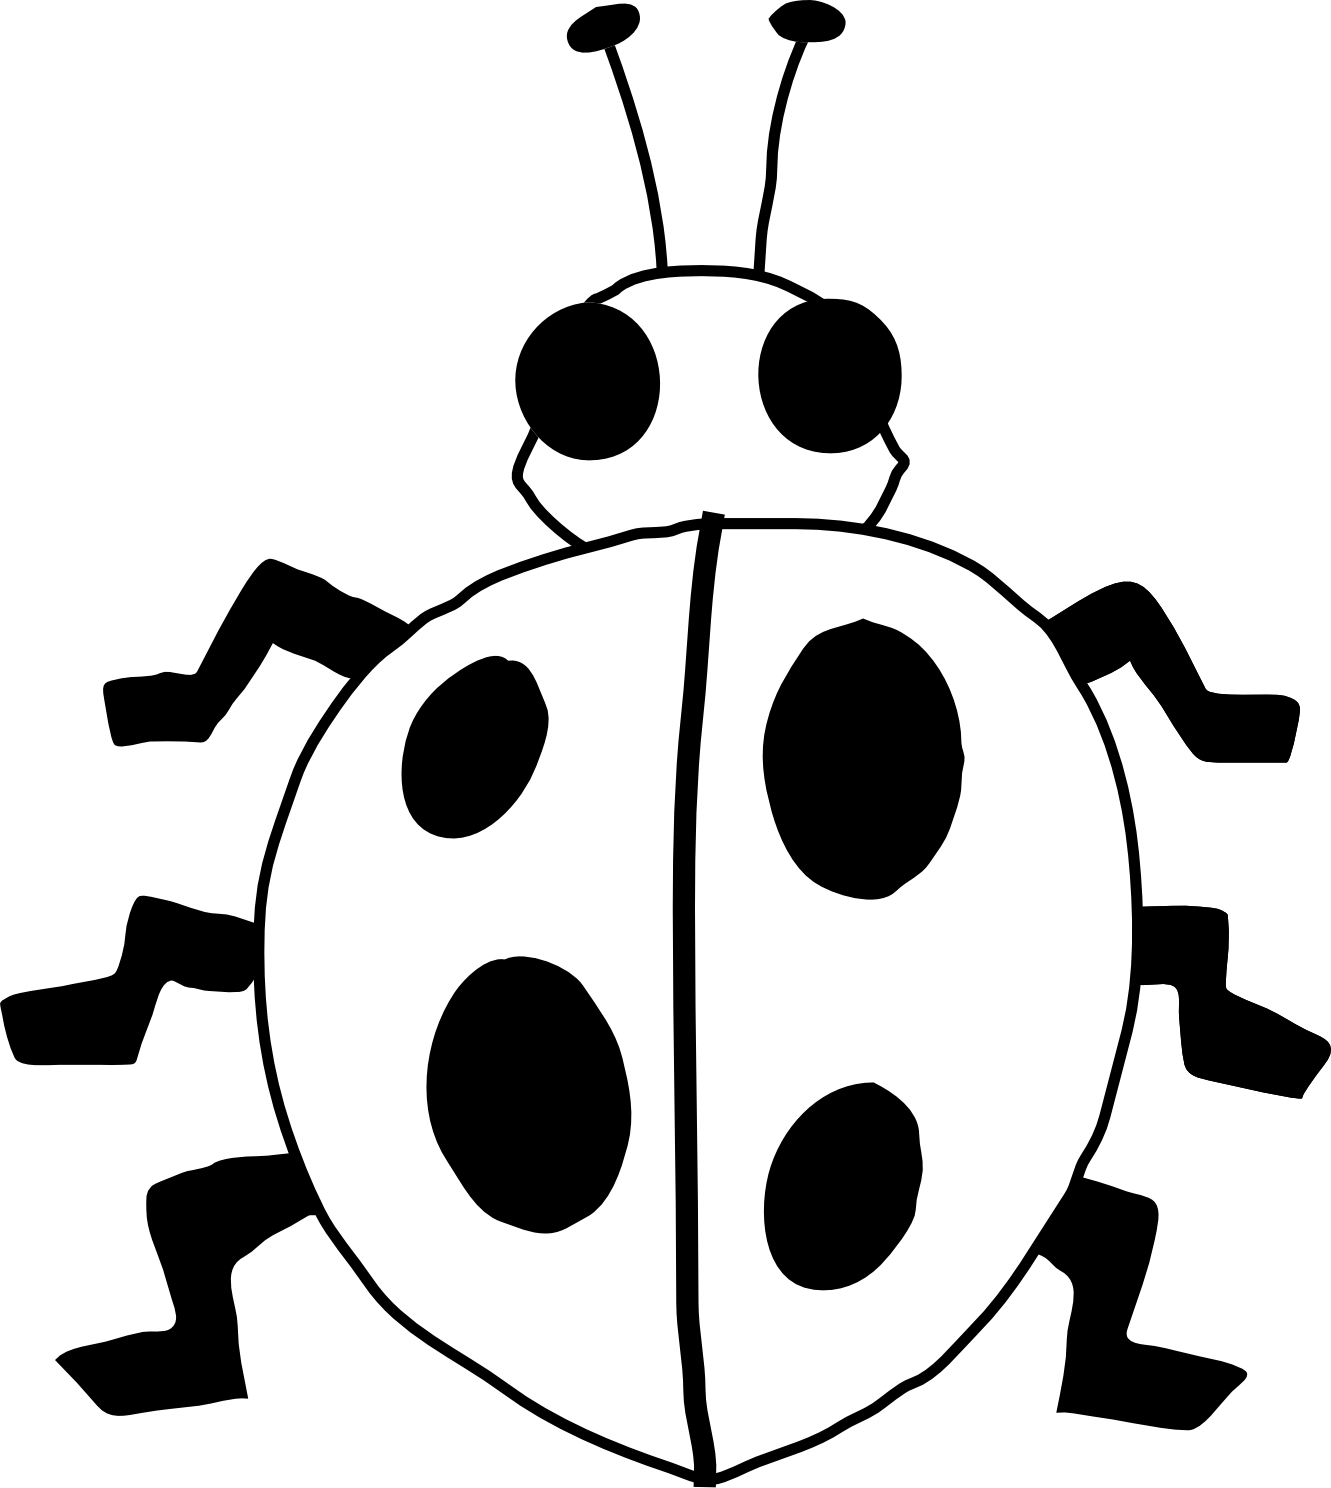 png freeuse Ladybug line art flower. Pillow clipart black and white